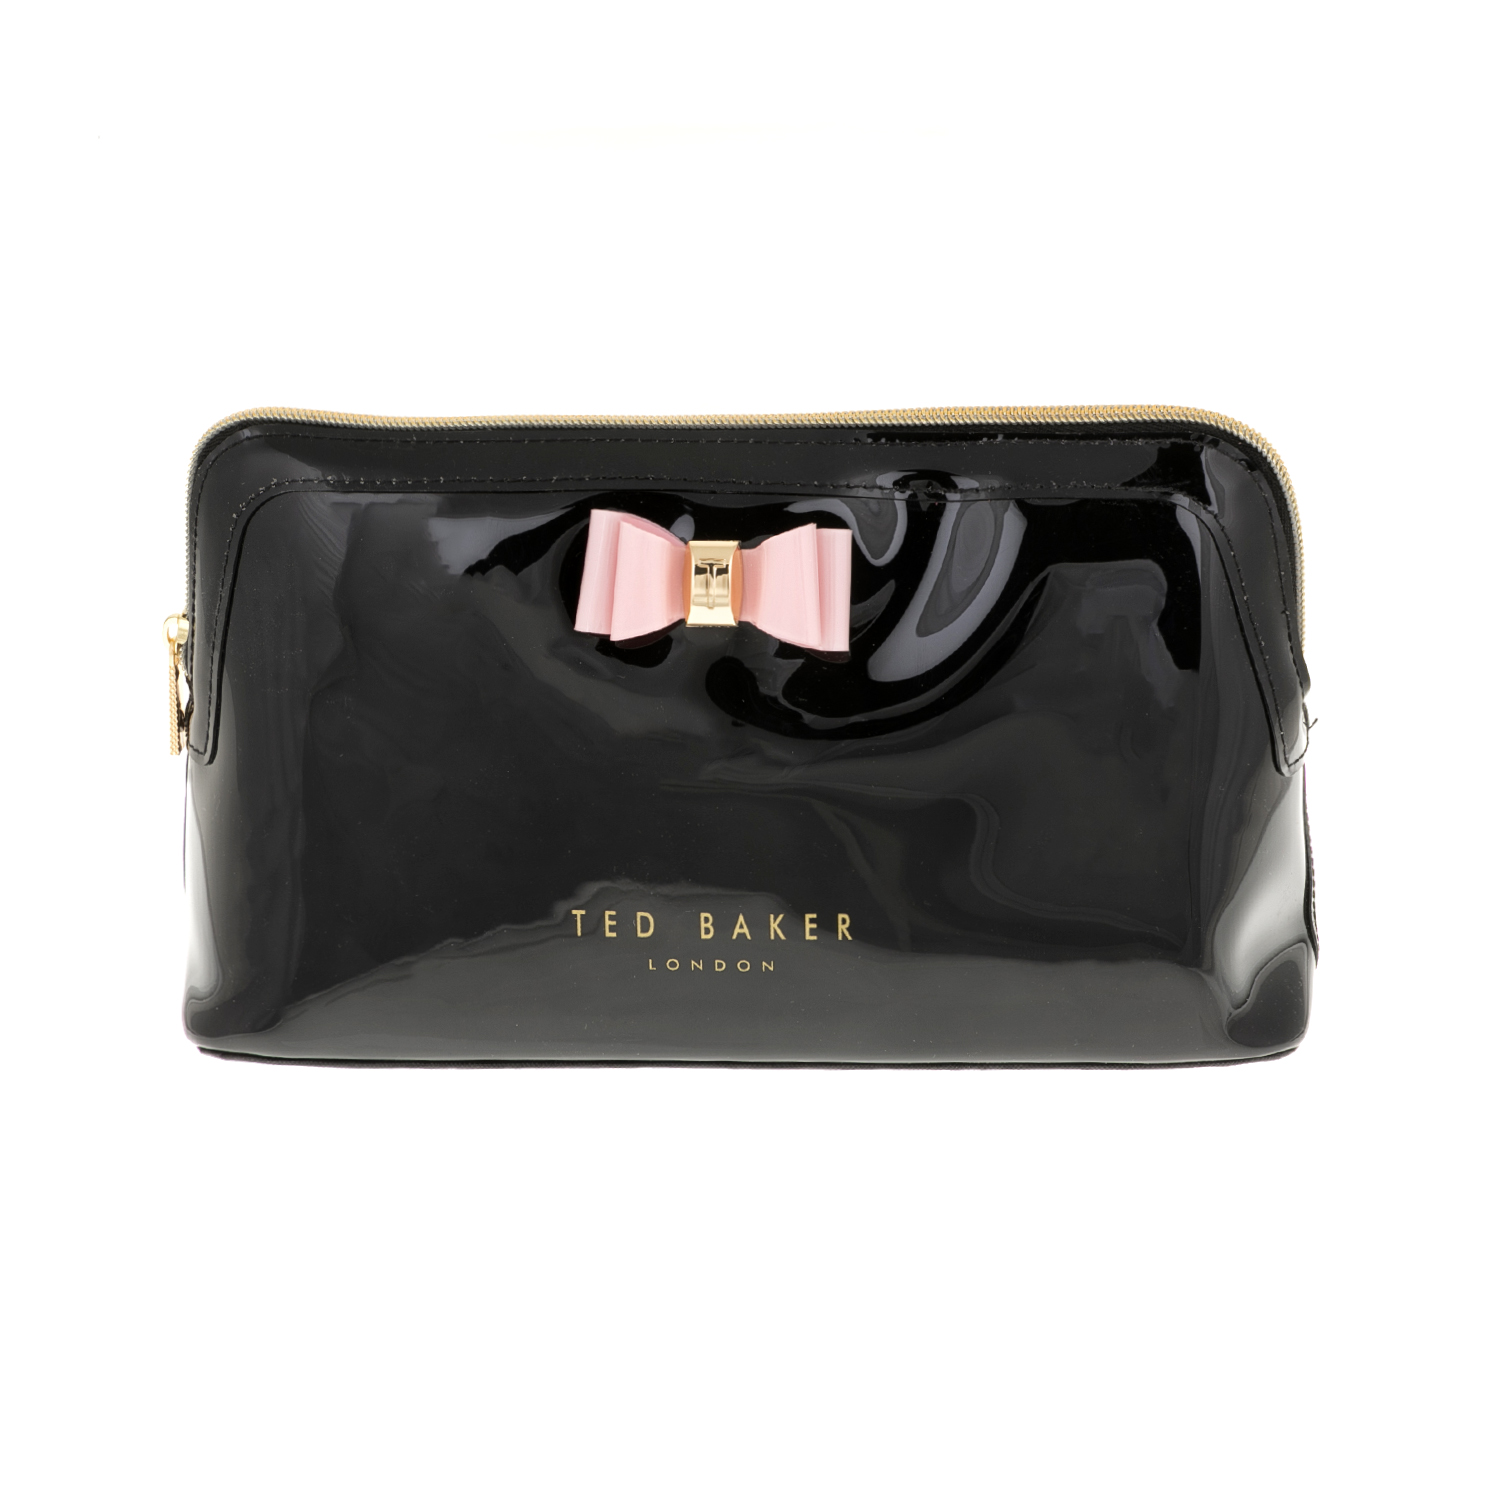 722a8bf130a TED BAKER - Γυναικειο νεσεσερ JANA LARGE BOW TED BAKER μαυρο